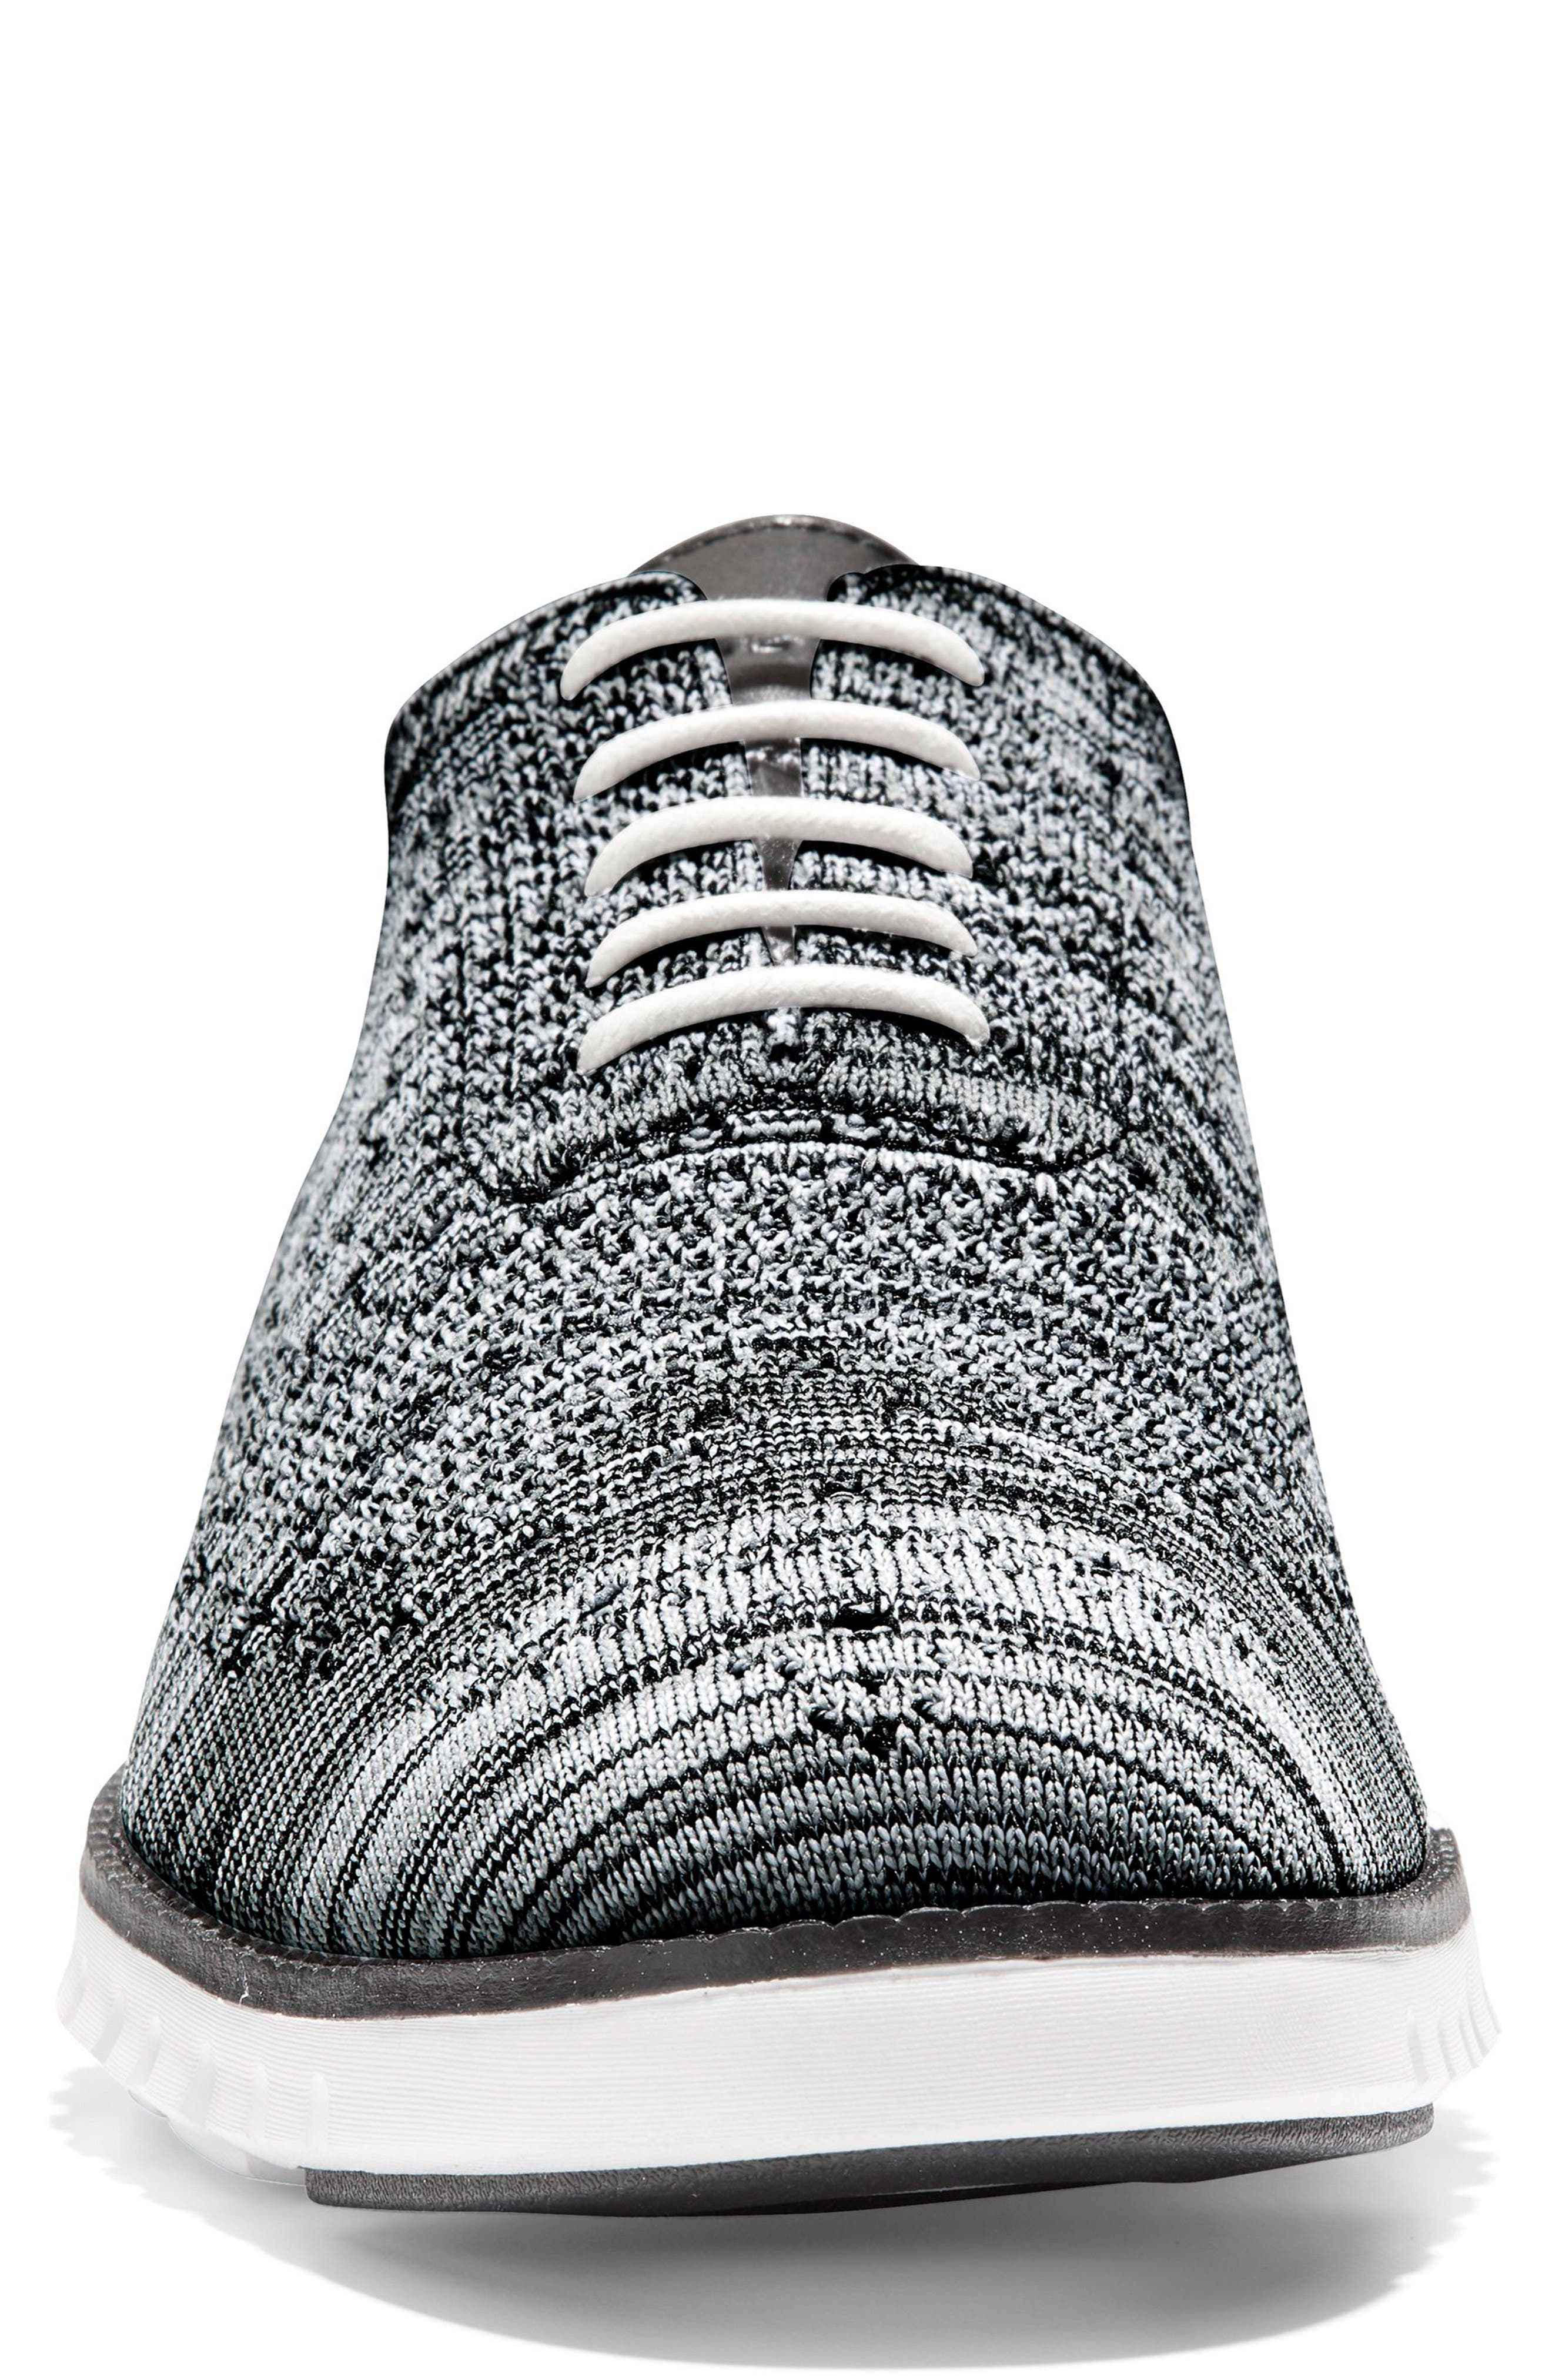 COLE HAAN, ZeroGrand Stitchlite Oxford, Alternate thumbnail 4, color, BLACK/ OPTIC WHITE/ SLEET KNIT